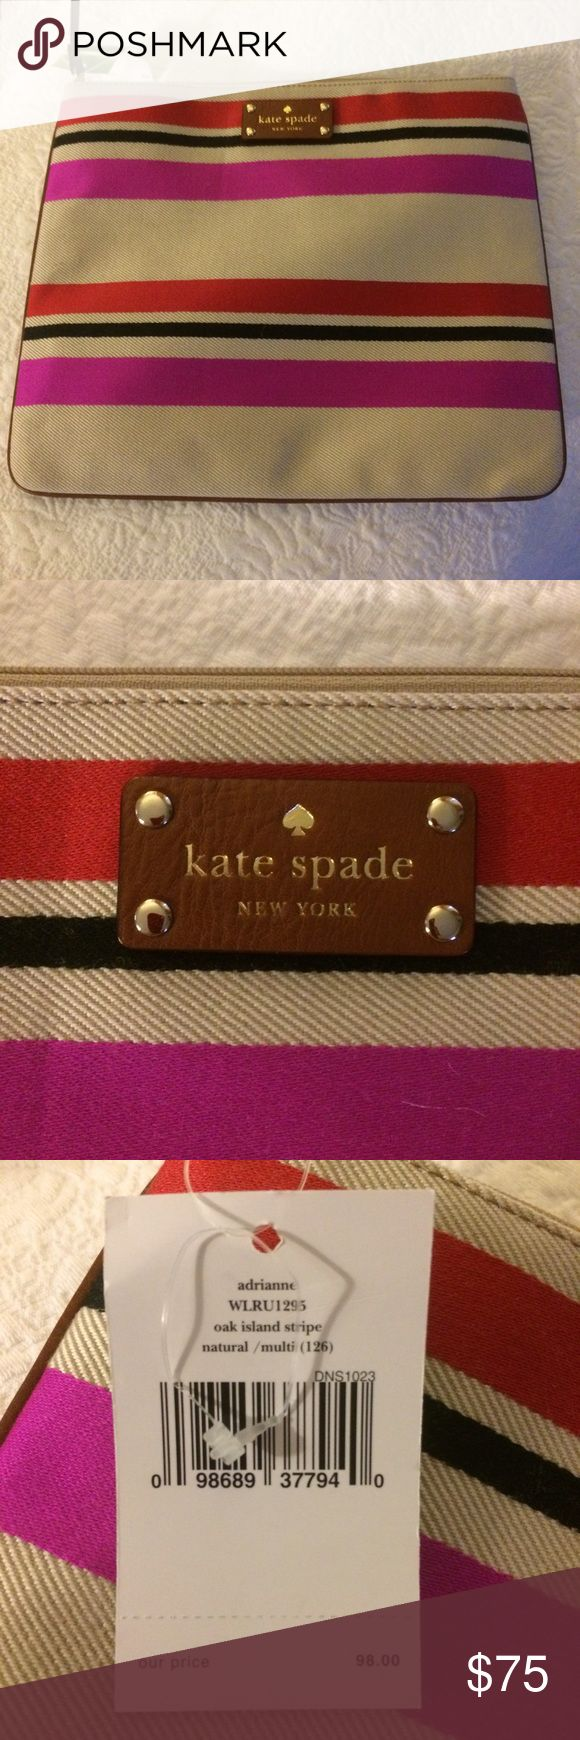 """Beautiful Kate spade canvas striped pouch Great pouch with hot pink stripes on a neutral canvas background.  Leather Kate spade """"license plate.""""  Two little pockets on inside, sewn into one side (like for a cell phone or business card).  10 inches high, 12 wide! kate spade Bags"""